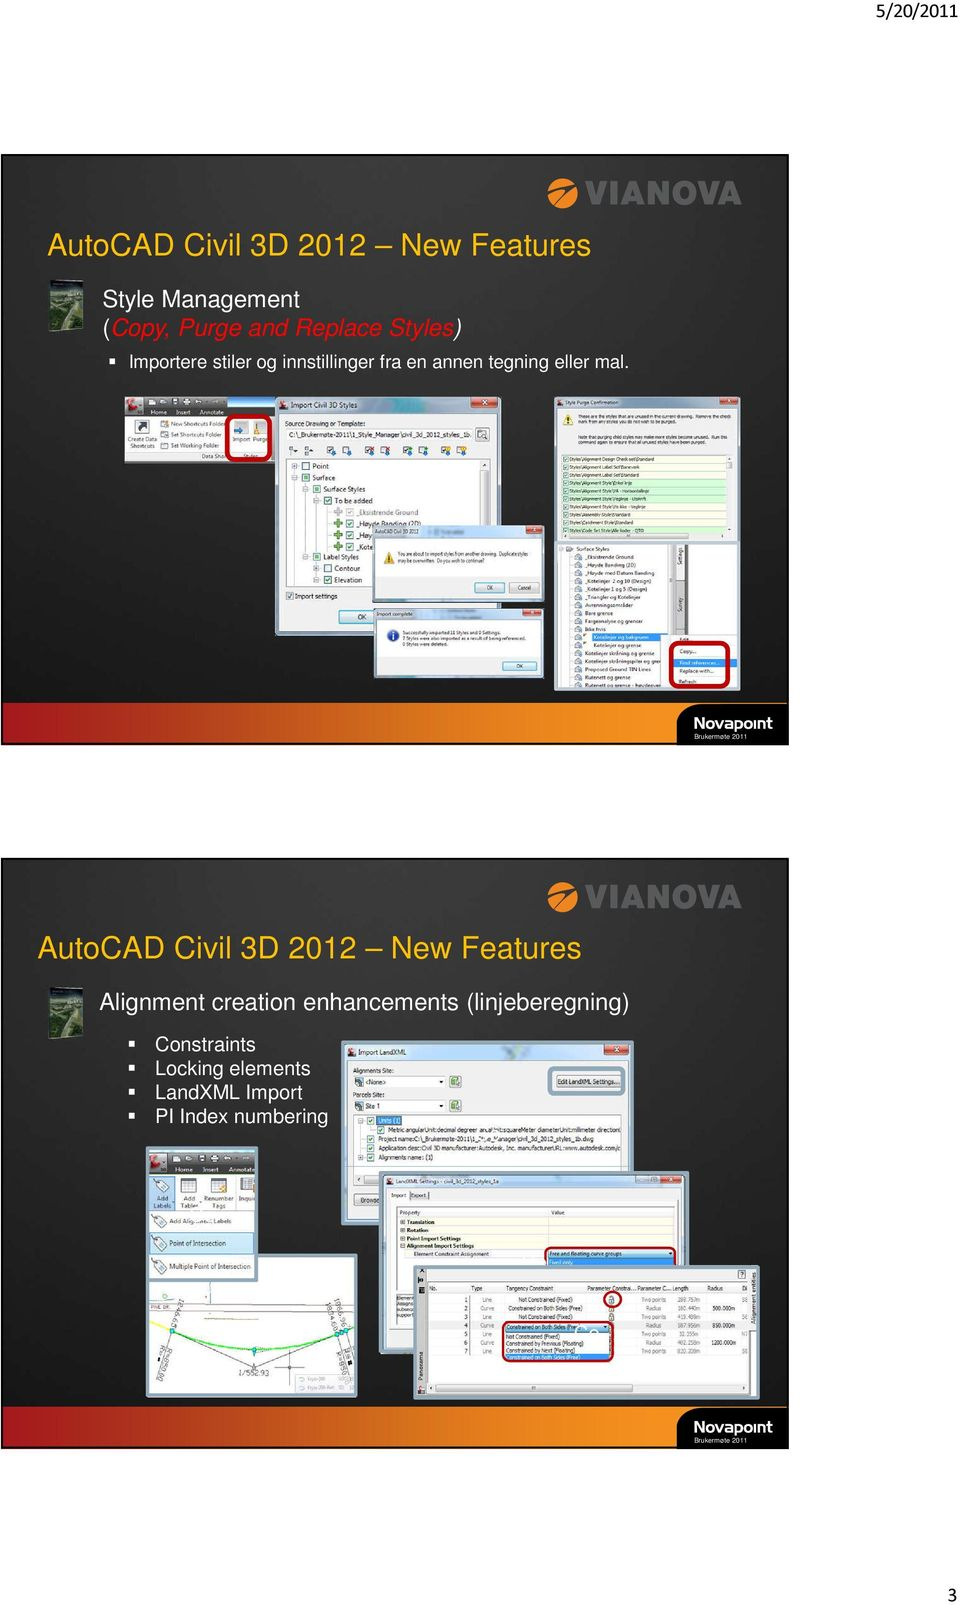 AutoCAD Civil 3D 2012 New Features Alignment creation enhancements